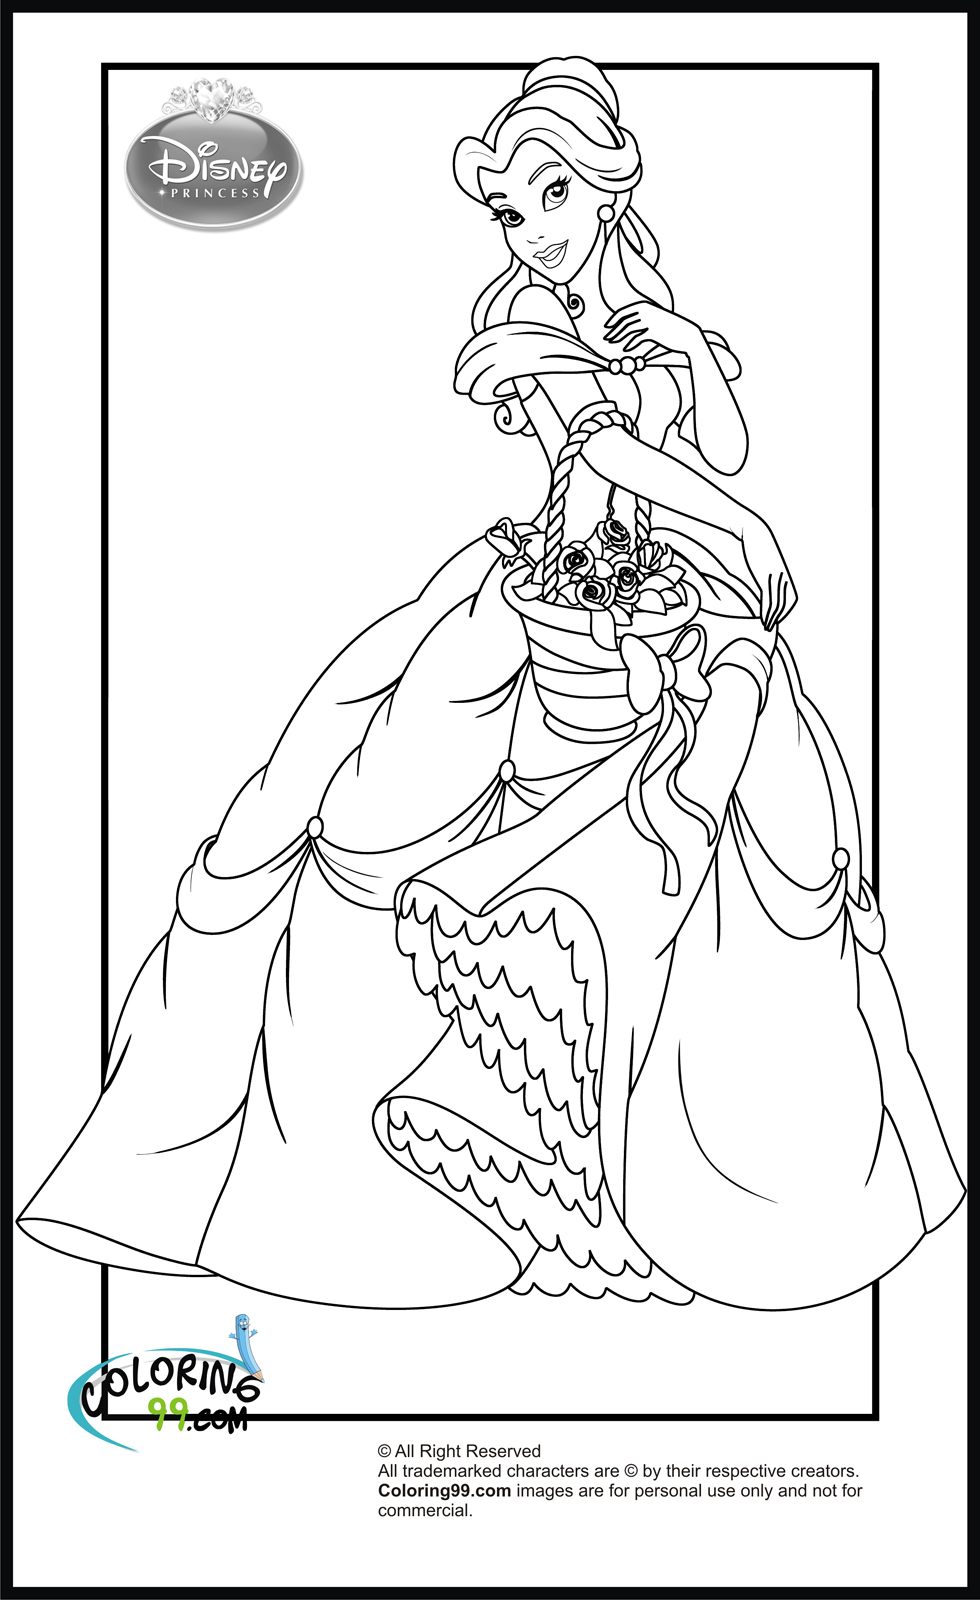 coloring princesses princess coloring fantasy coloring pages coloring princesses